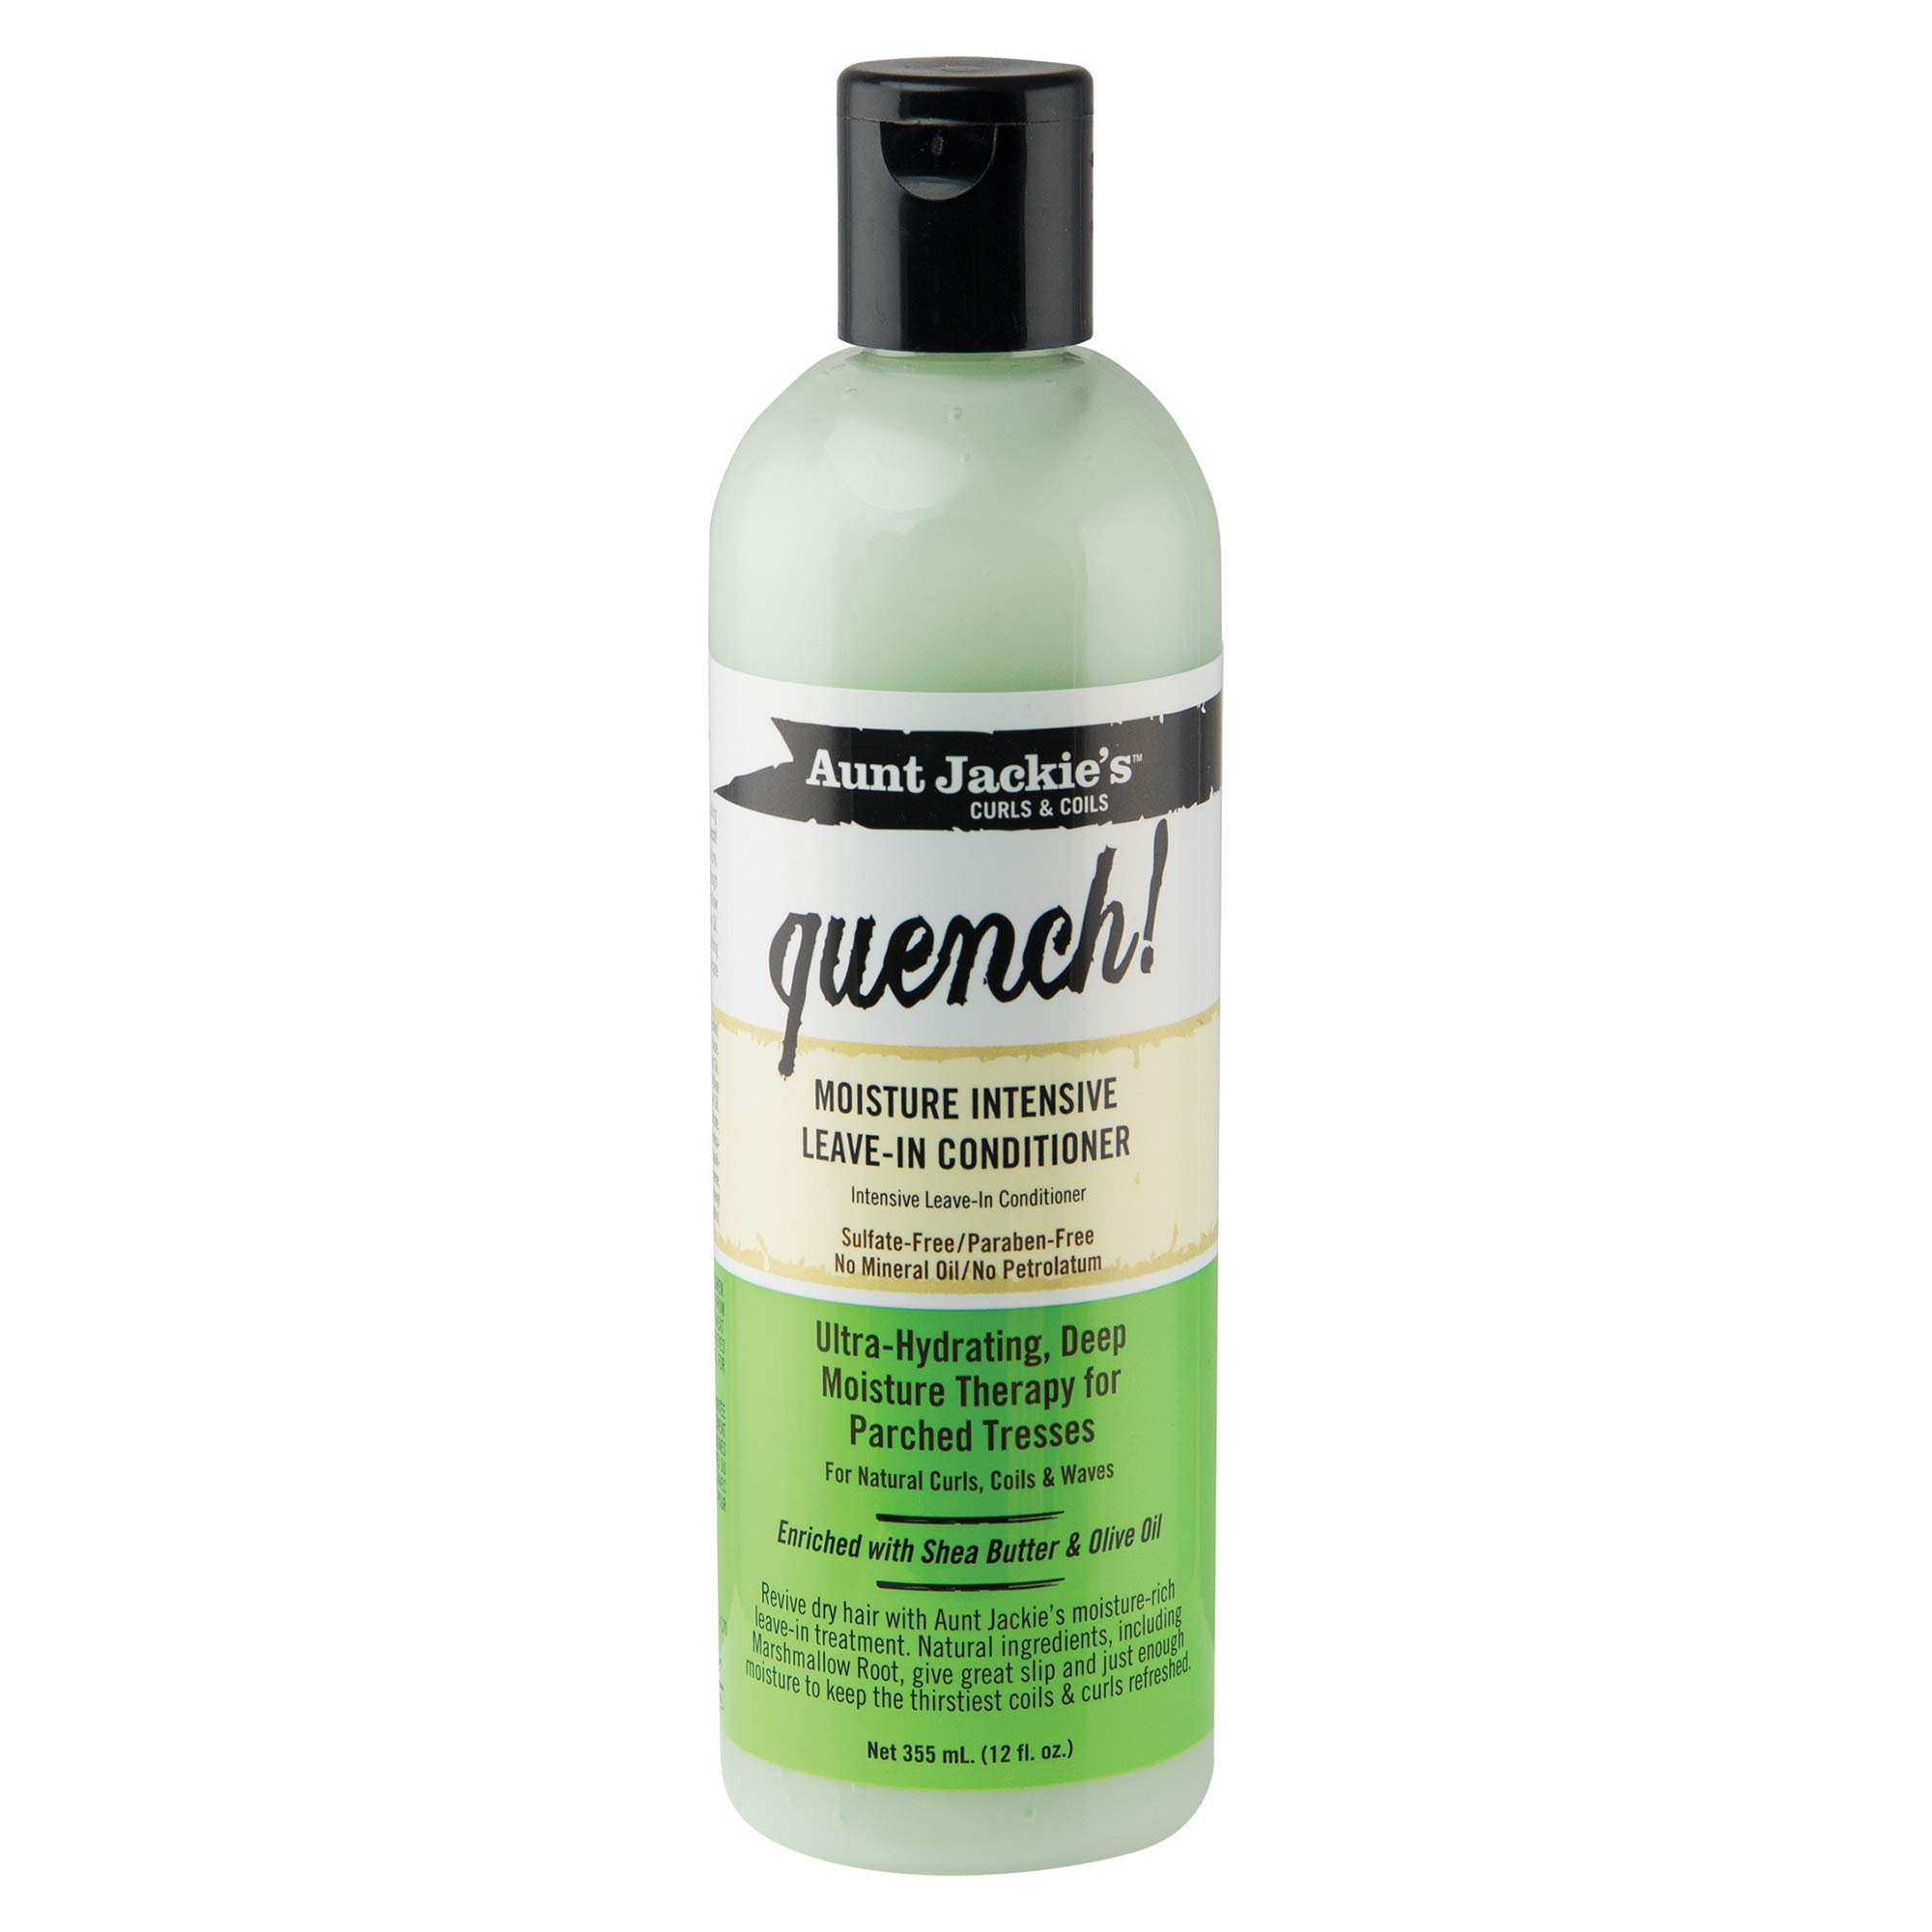 Aunt Jackie's Quench Moisture Intensive Leave-in Conditioner, Shea butter & Olive Oil, 12 Fl.Oz